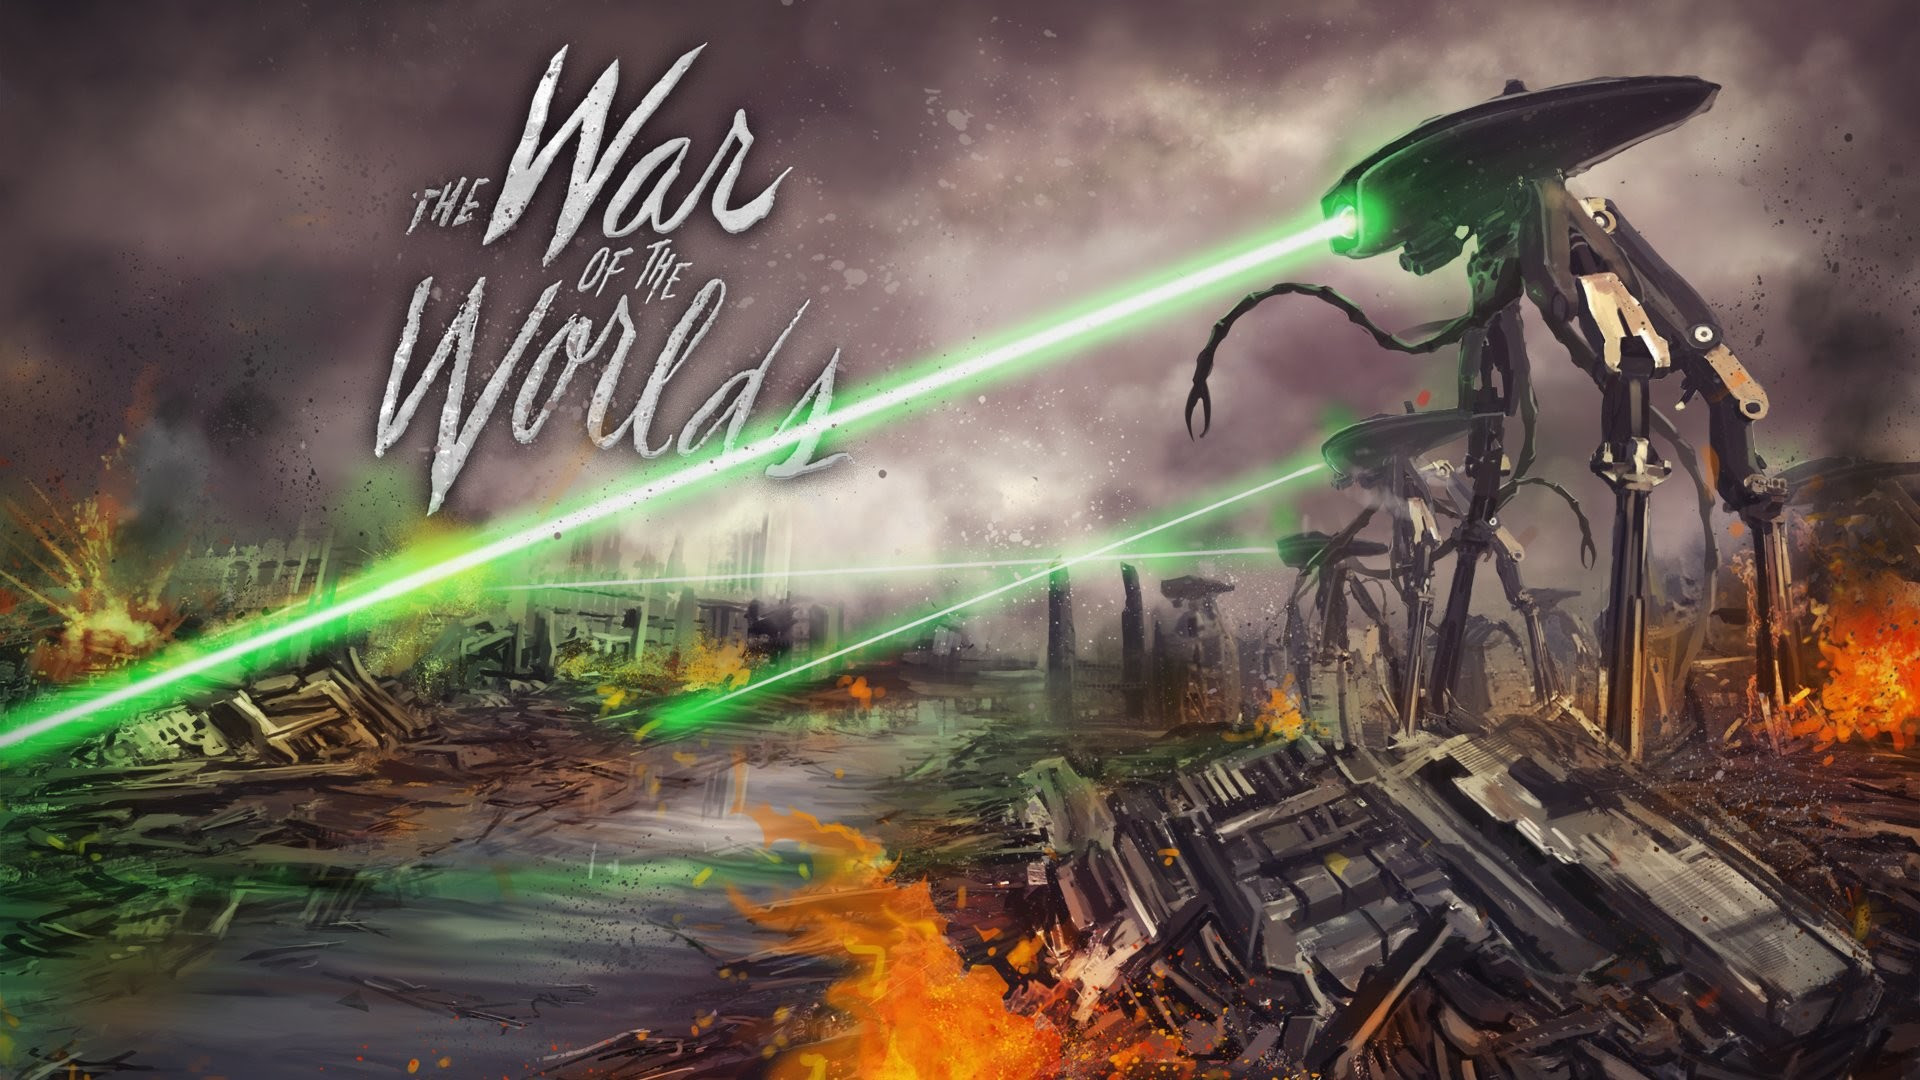 War Of The Worlds Wallpaper 70 Images